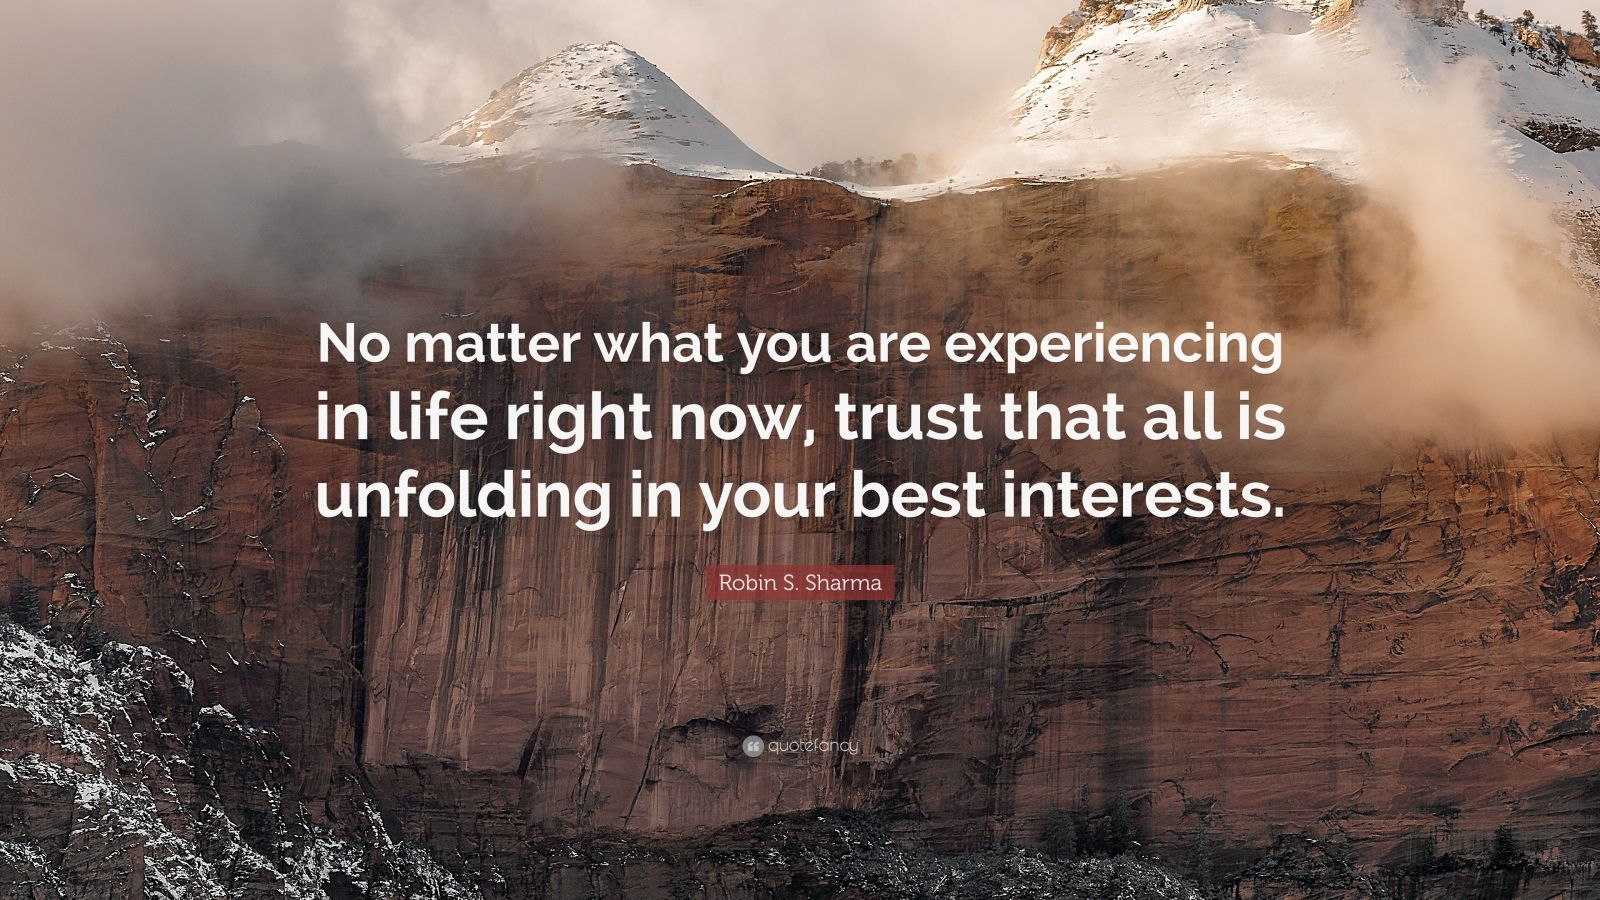 """Robin S. Sharma Quote: """"No matter what you are experiencing in life right now, trust that all is unfolding in your best interests."""""""